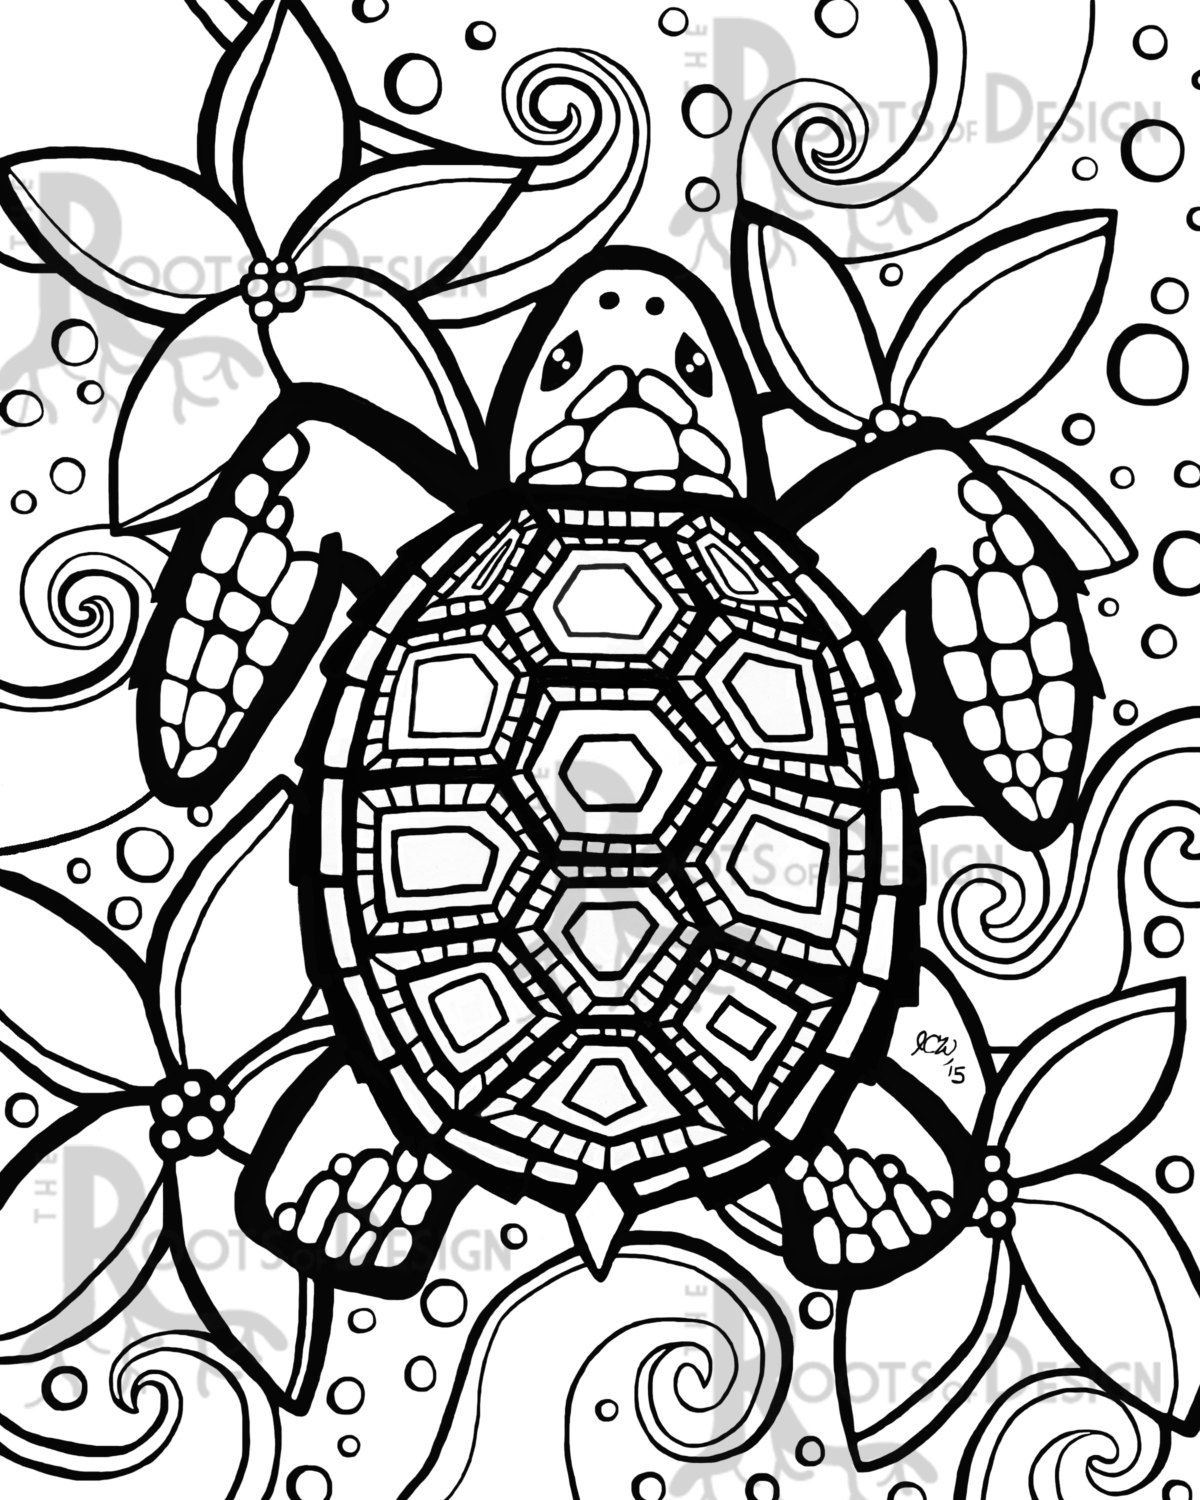 Instant Download Coloring Page Turtle Zentangle Inspired Etsy In 2021 Mandala Coloring Pages Mandala Coloring Turtle Coloring Pages